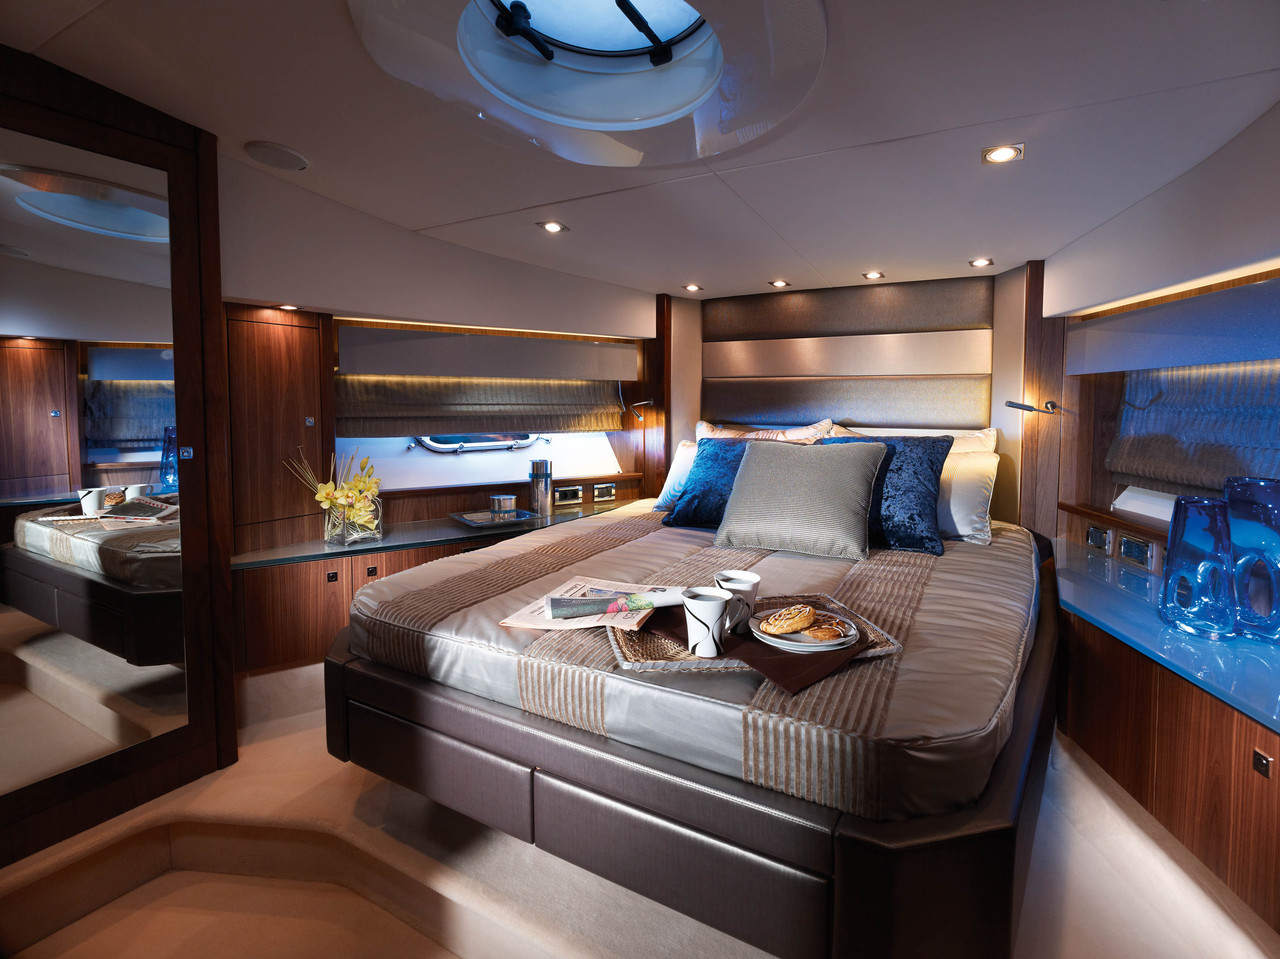 Luxury Yacht Bedroom